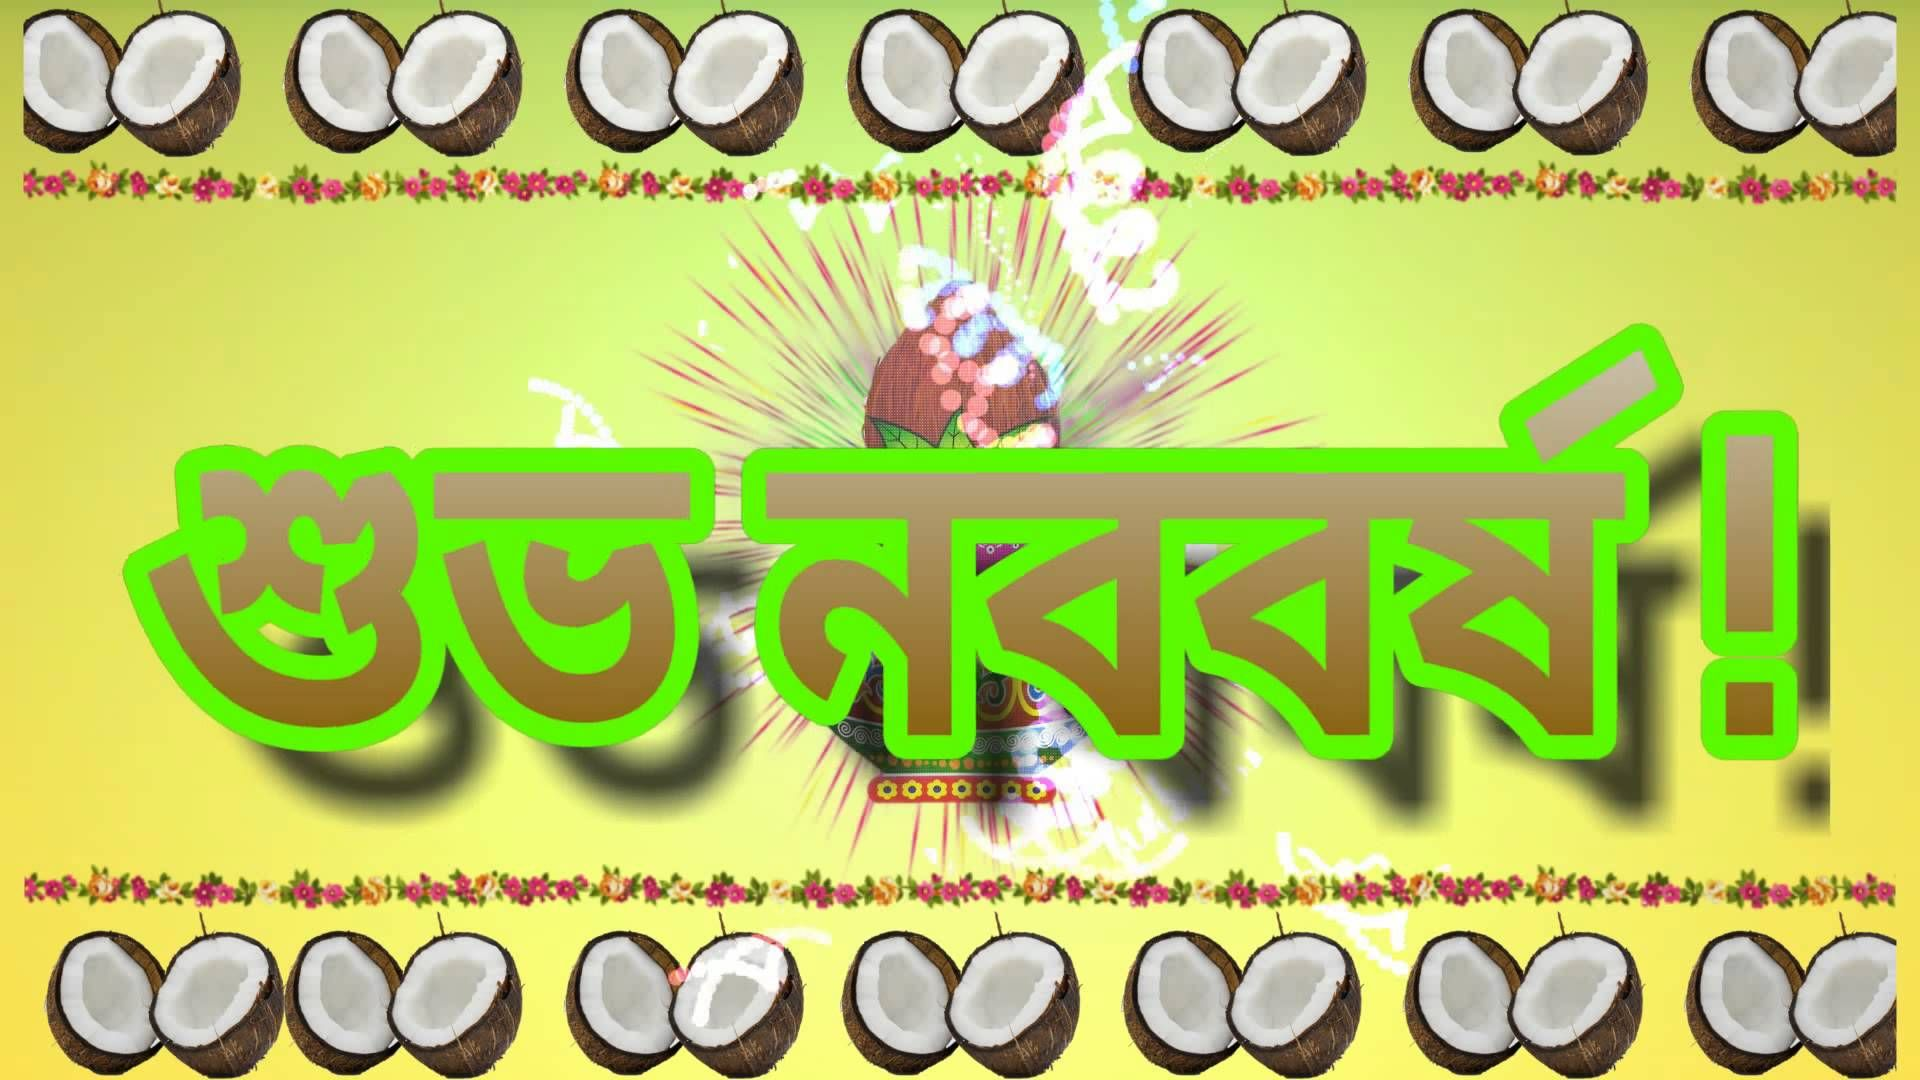 happy pohela boishakh 2016 poila baisakh wishes bengali new year greet